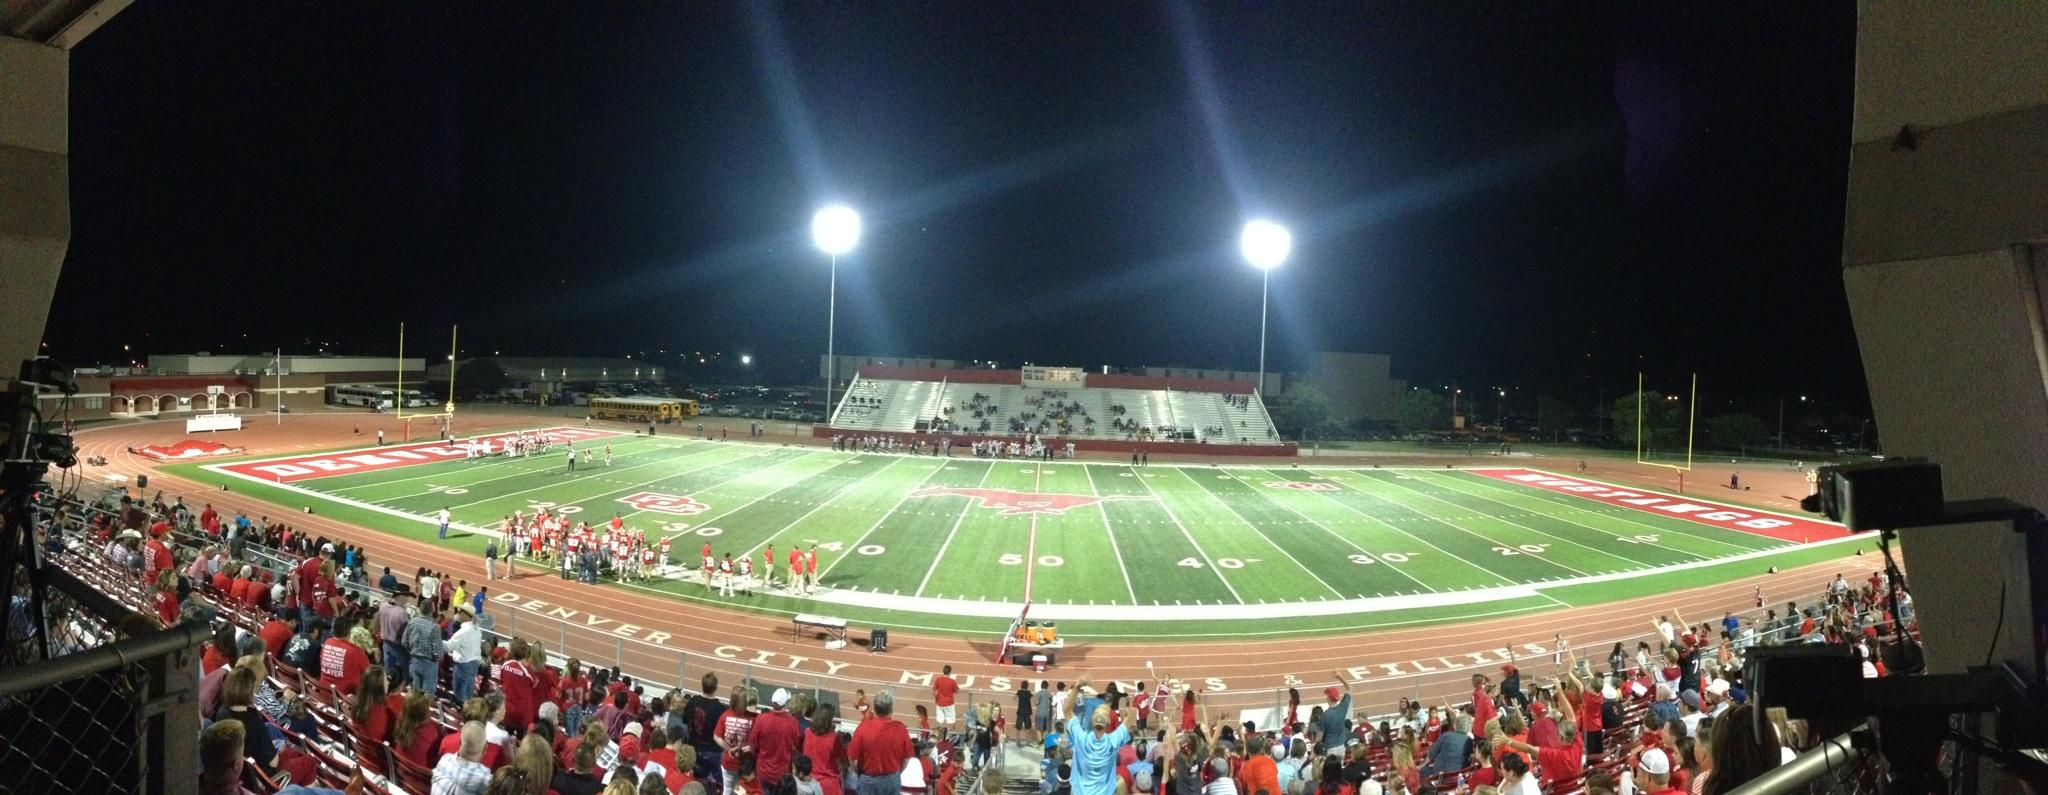 Pictured: Denver City Texas Football Field